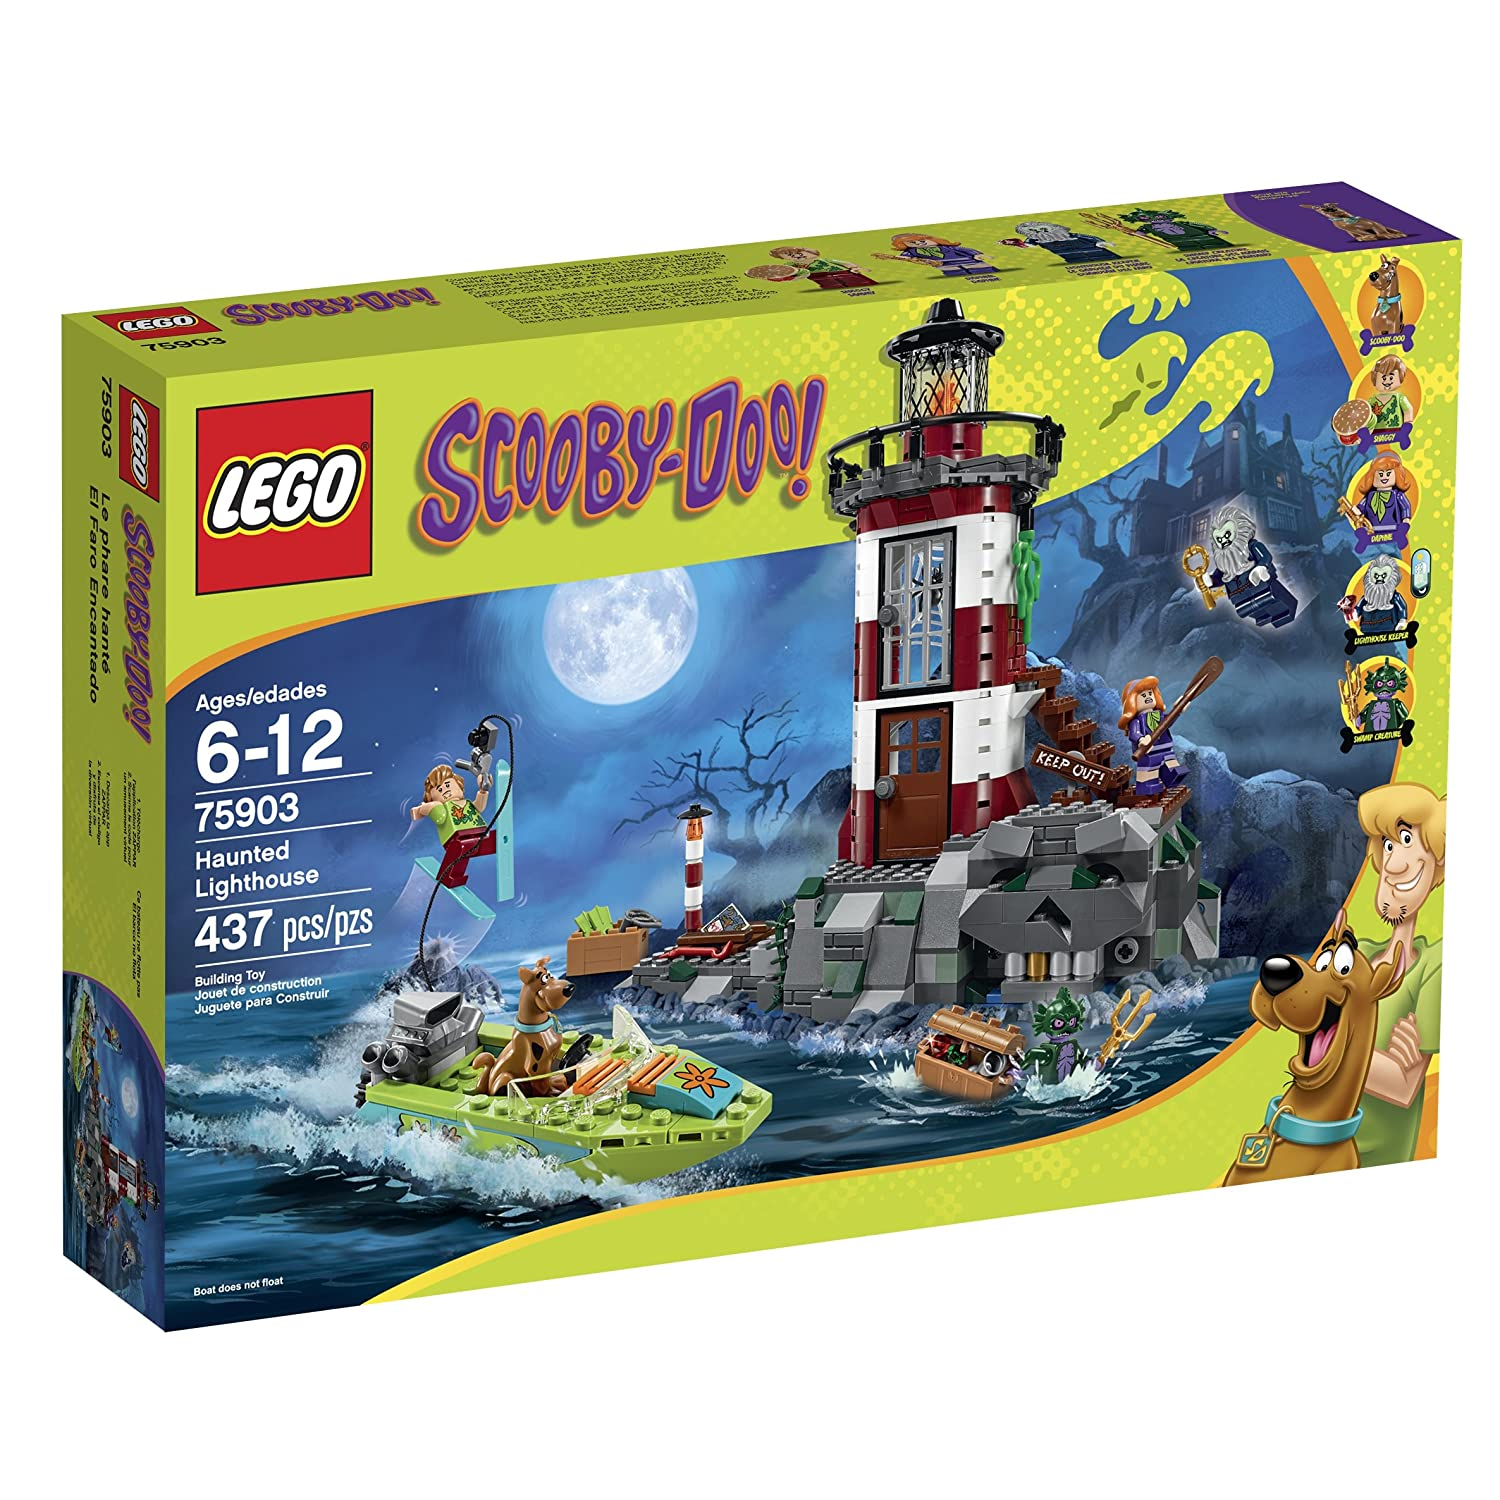 Top 5 Best LEGO Scooby Doo Sets Reviews in 2021 8